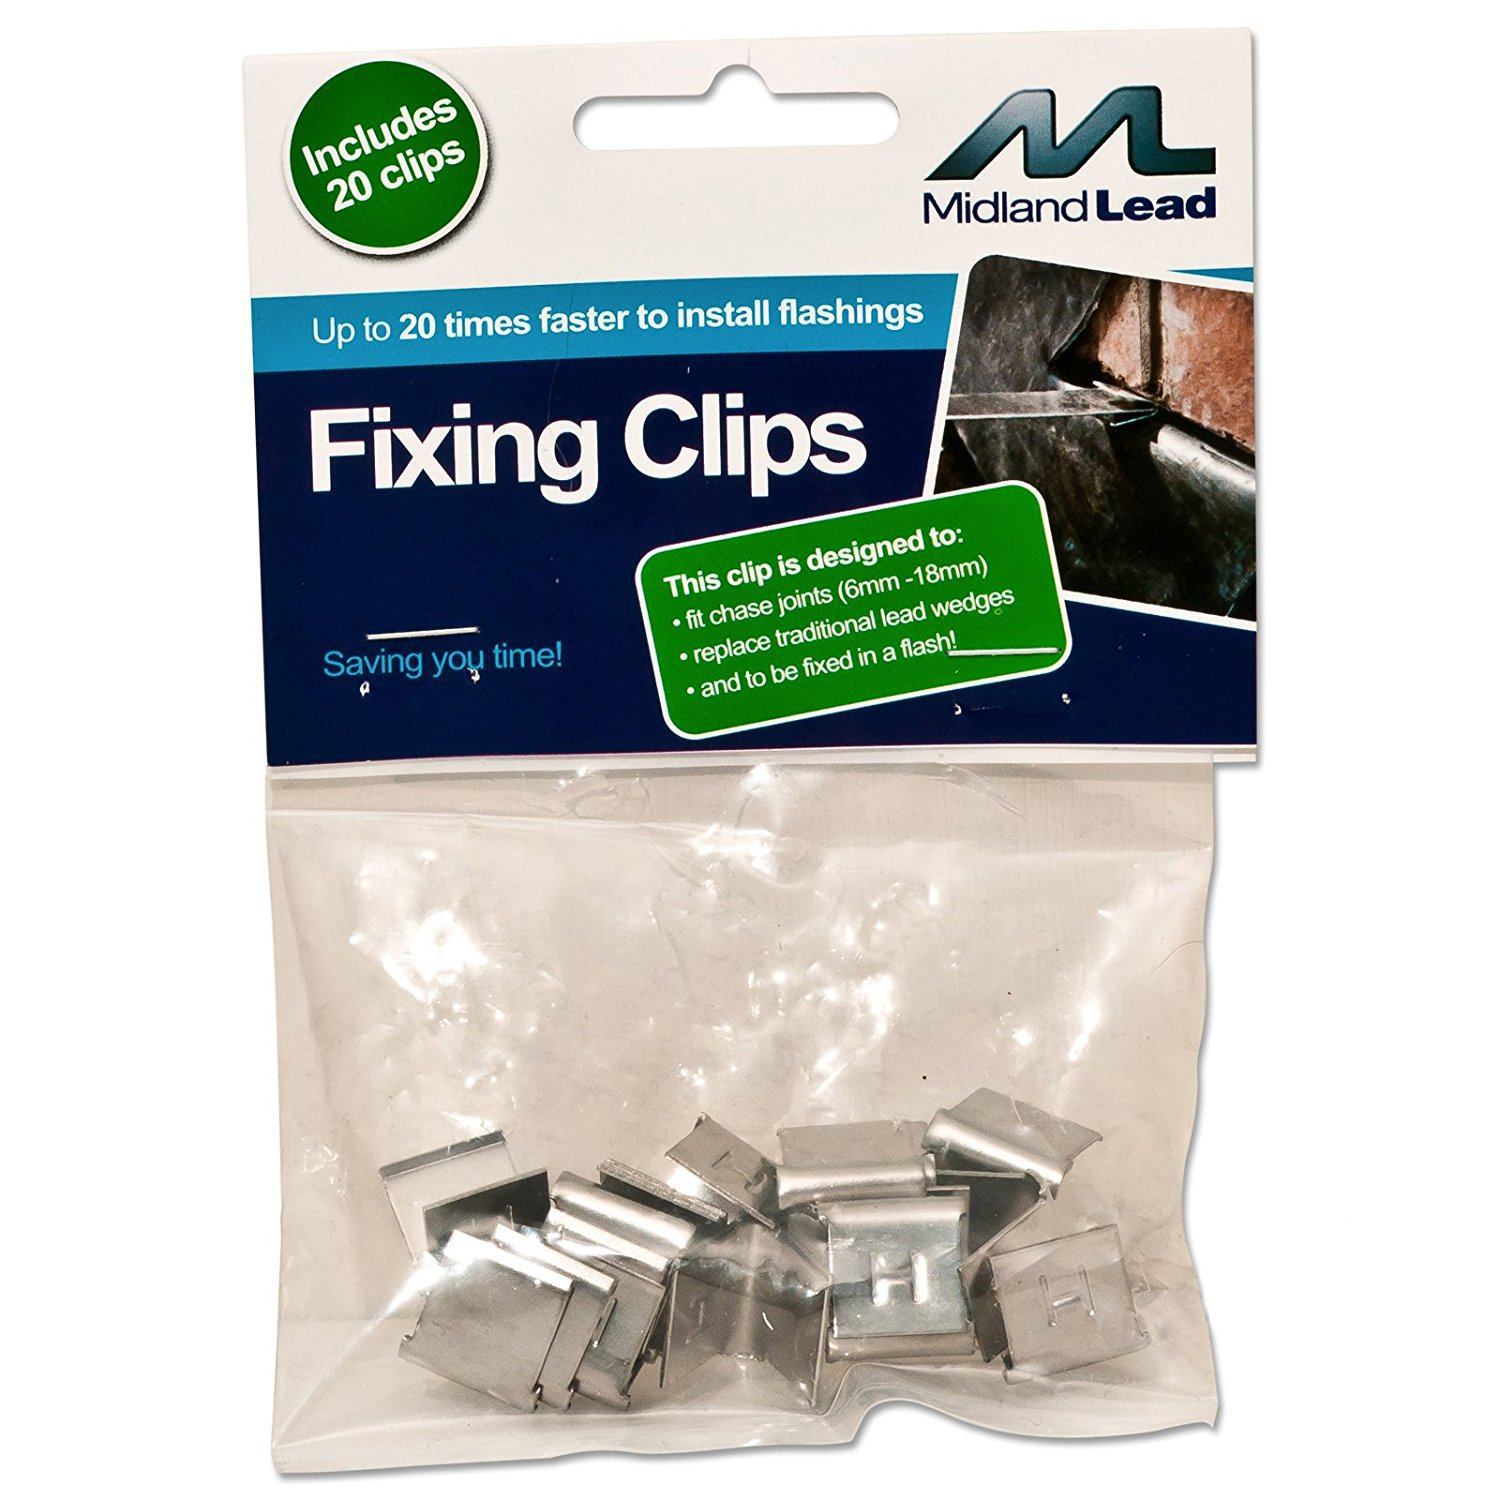 Hall clips -Bag of 50 - Lead flashing fixing clip - Fixed in a flash! Quick flashing clips easy flash use in the chase to dress before pointing or sealing